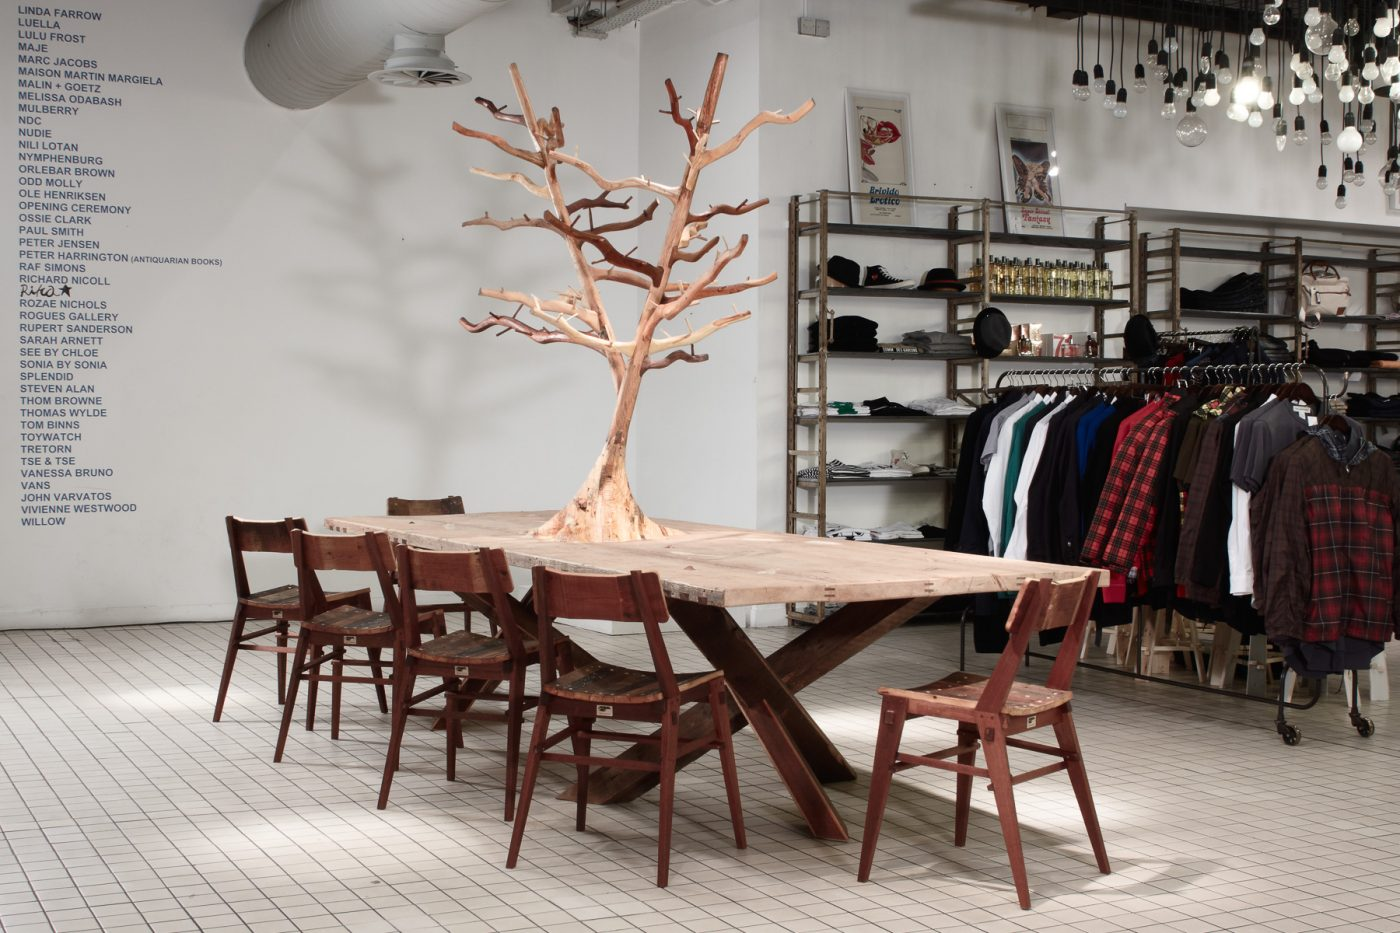 Jan Hendzel Studio Bespoke furniture for Bluebird boutique, Chelsea